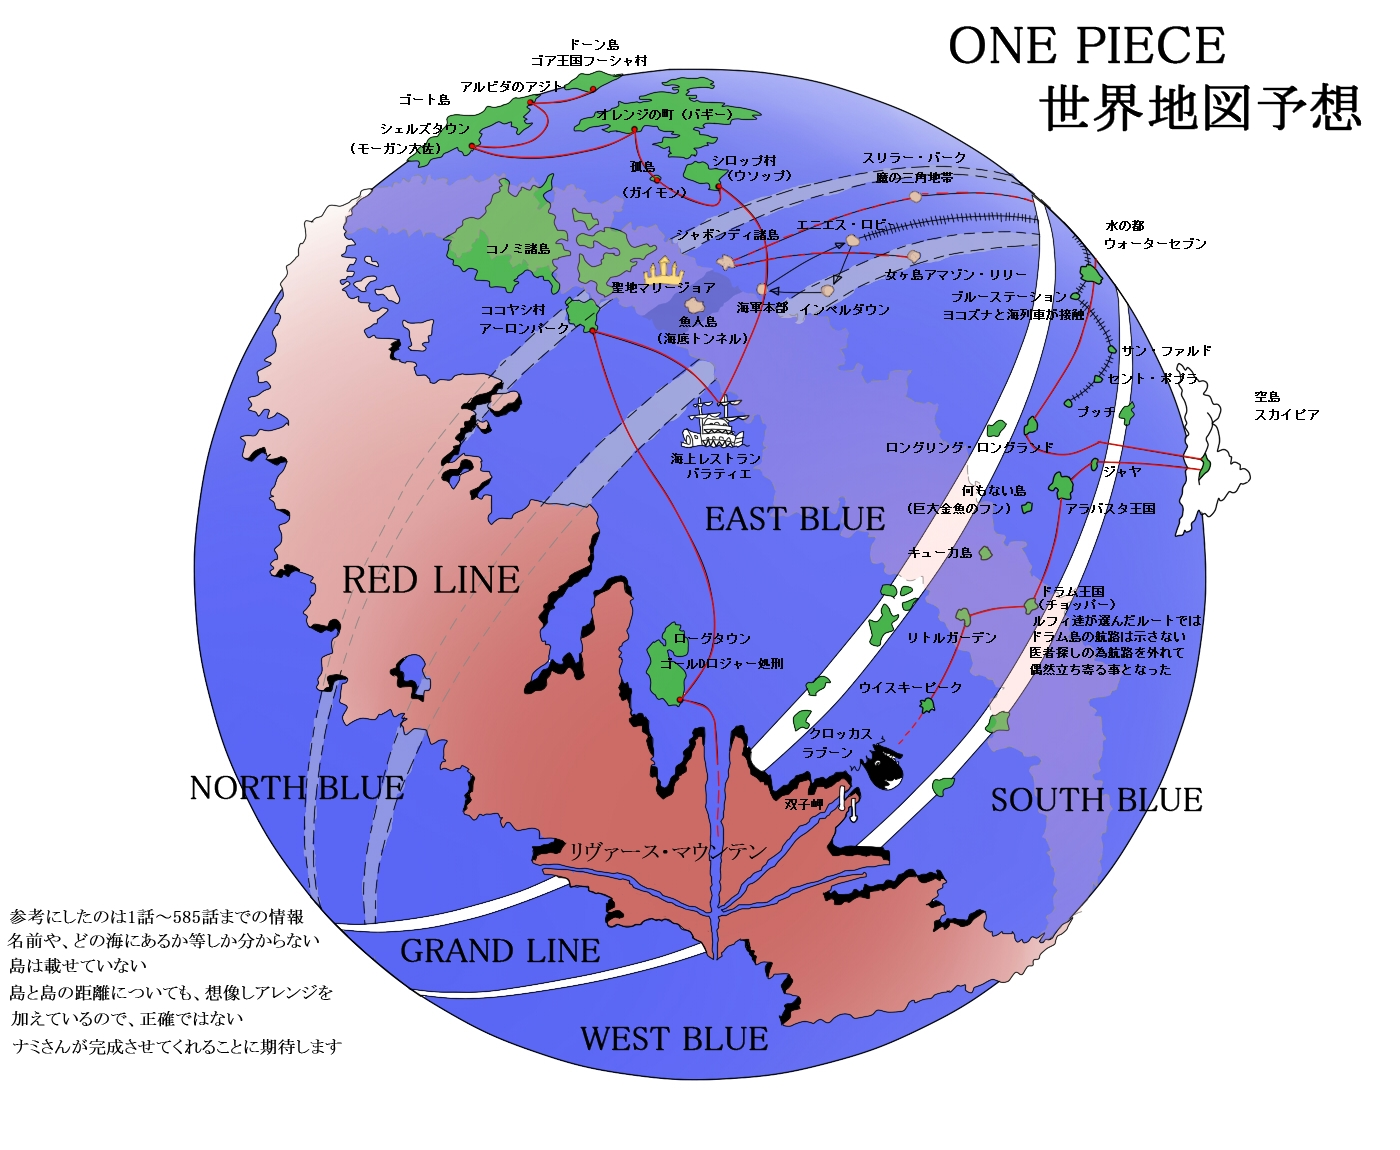 One Piece World Map